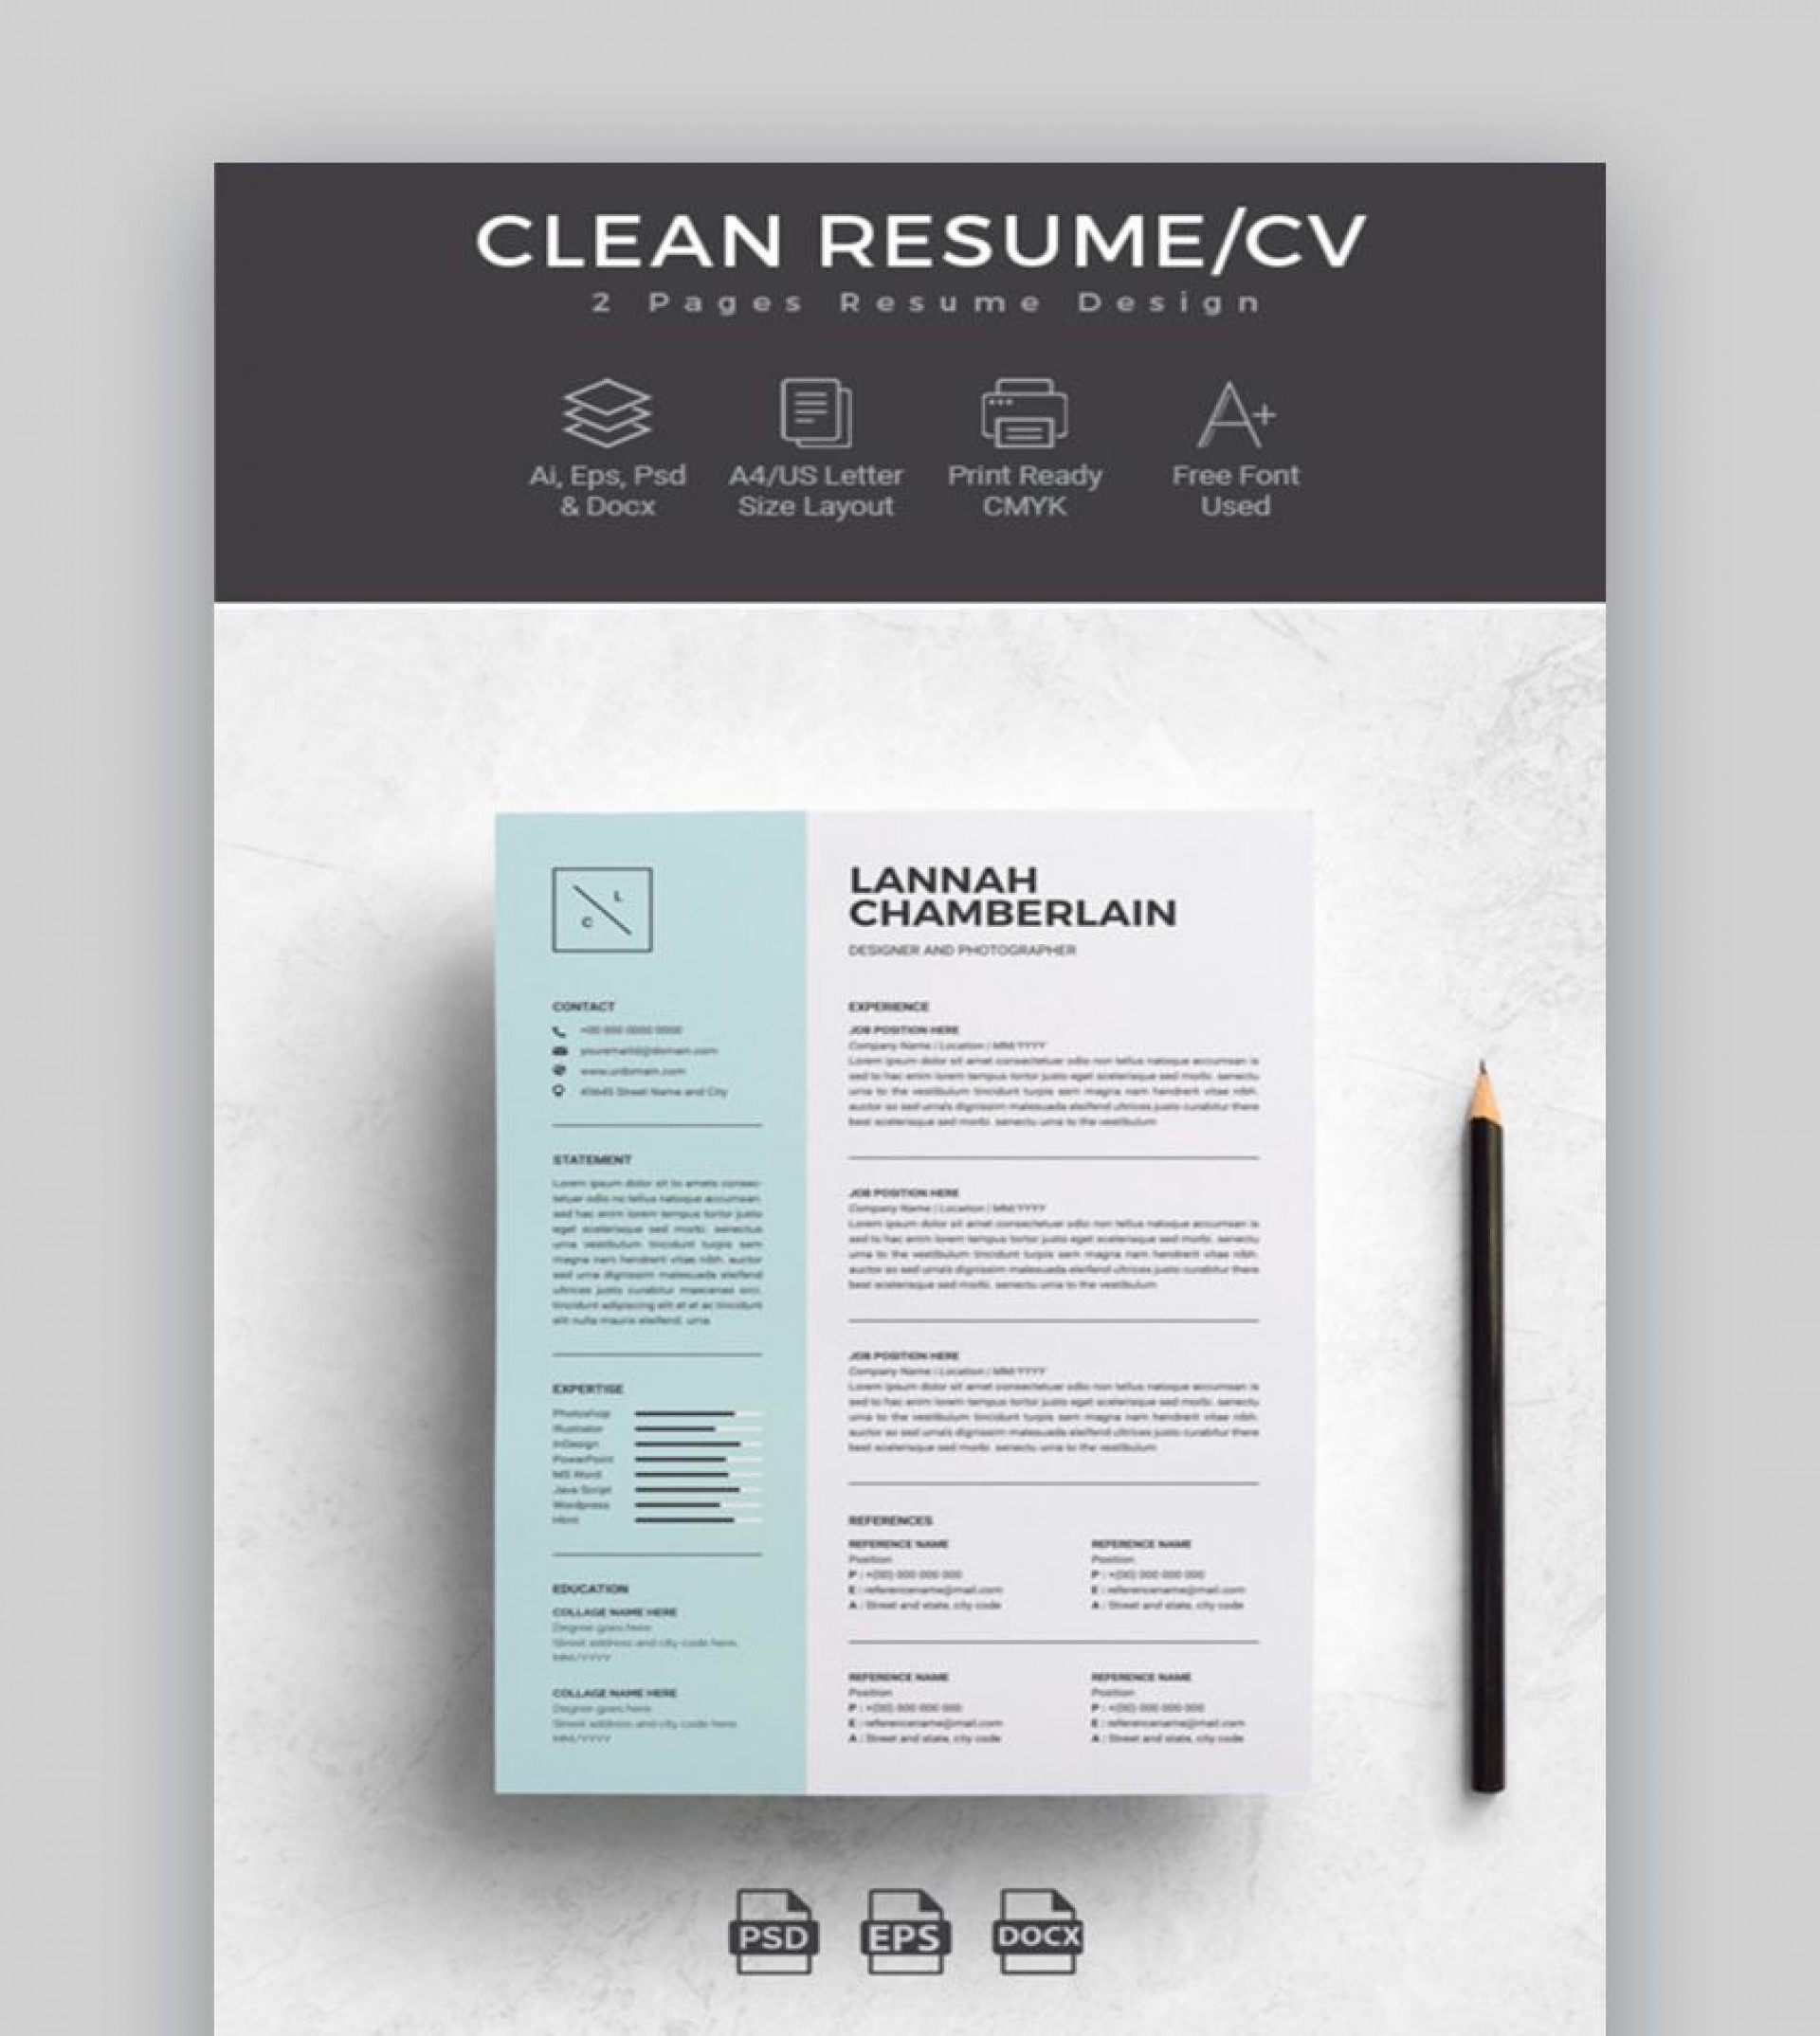 003 Fearsome M Word Template Resume High Resolution  Attractive Free Download Microsoft 2010 Downloadable Blank1920